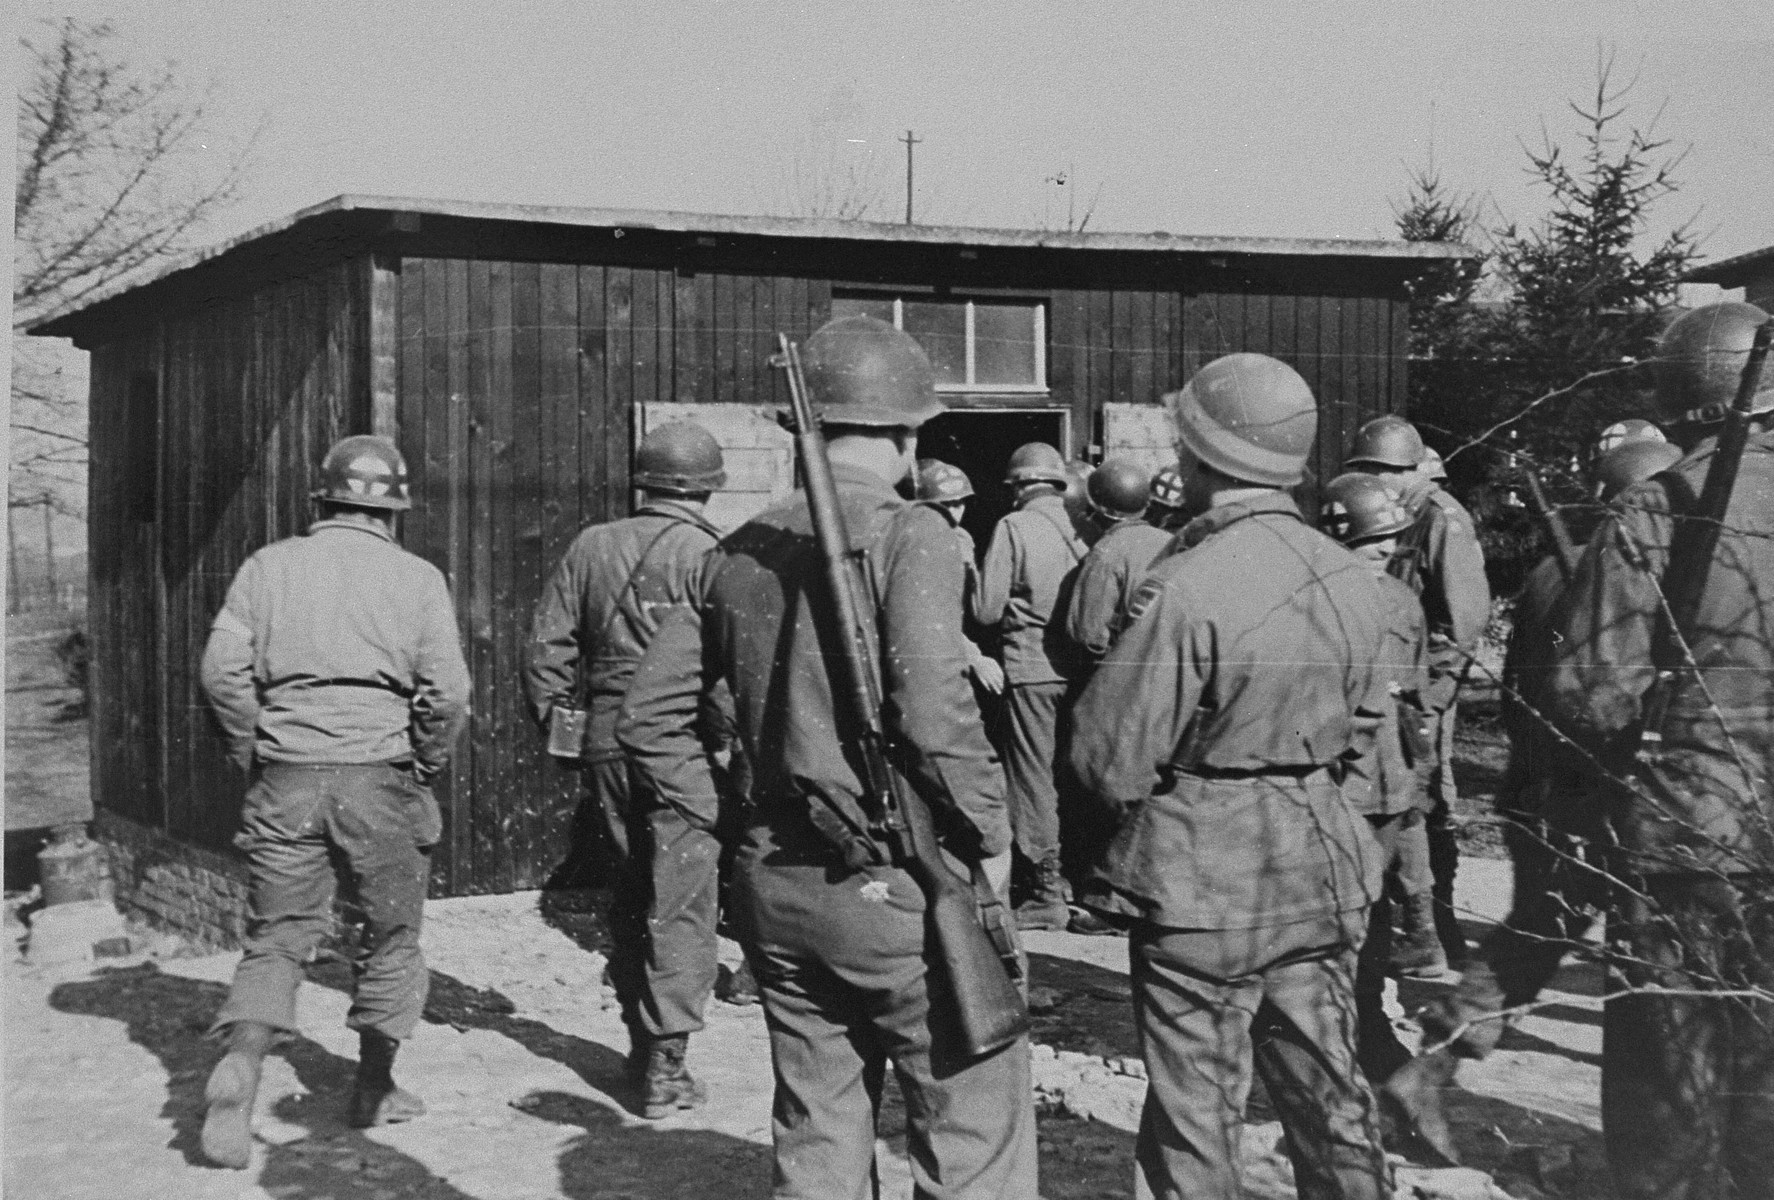 American soldiers on an inspection tour of the newly liberated Ohrdruf concentration camp.